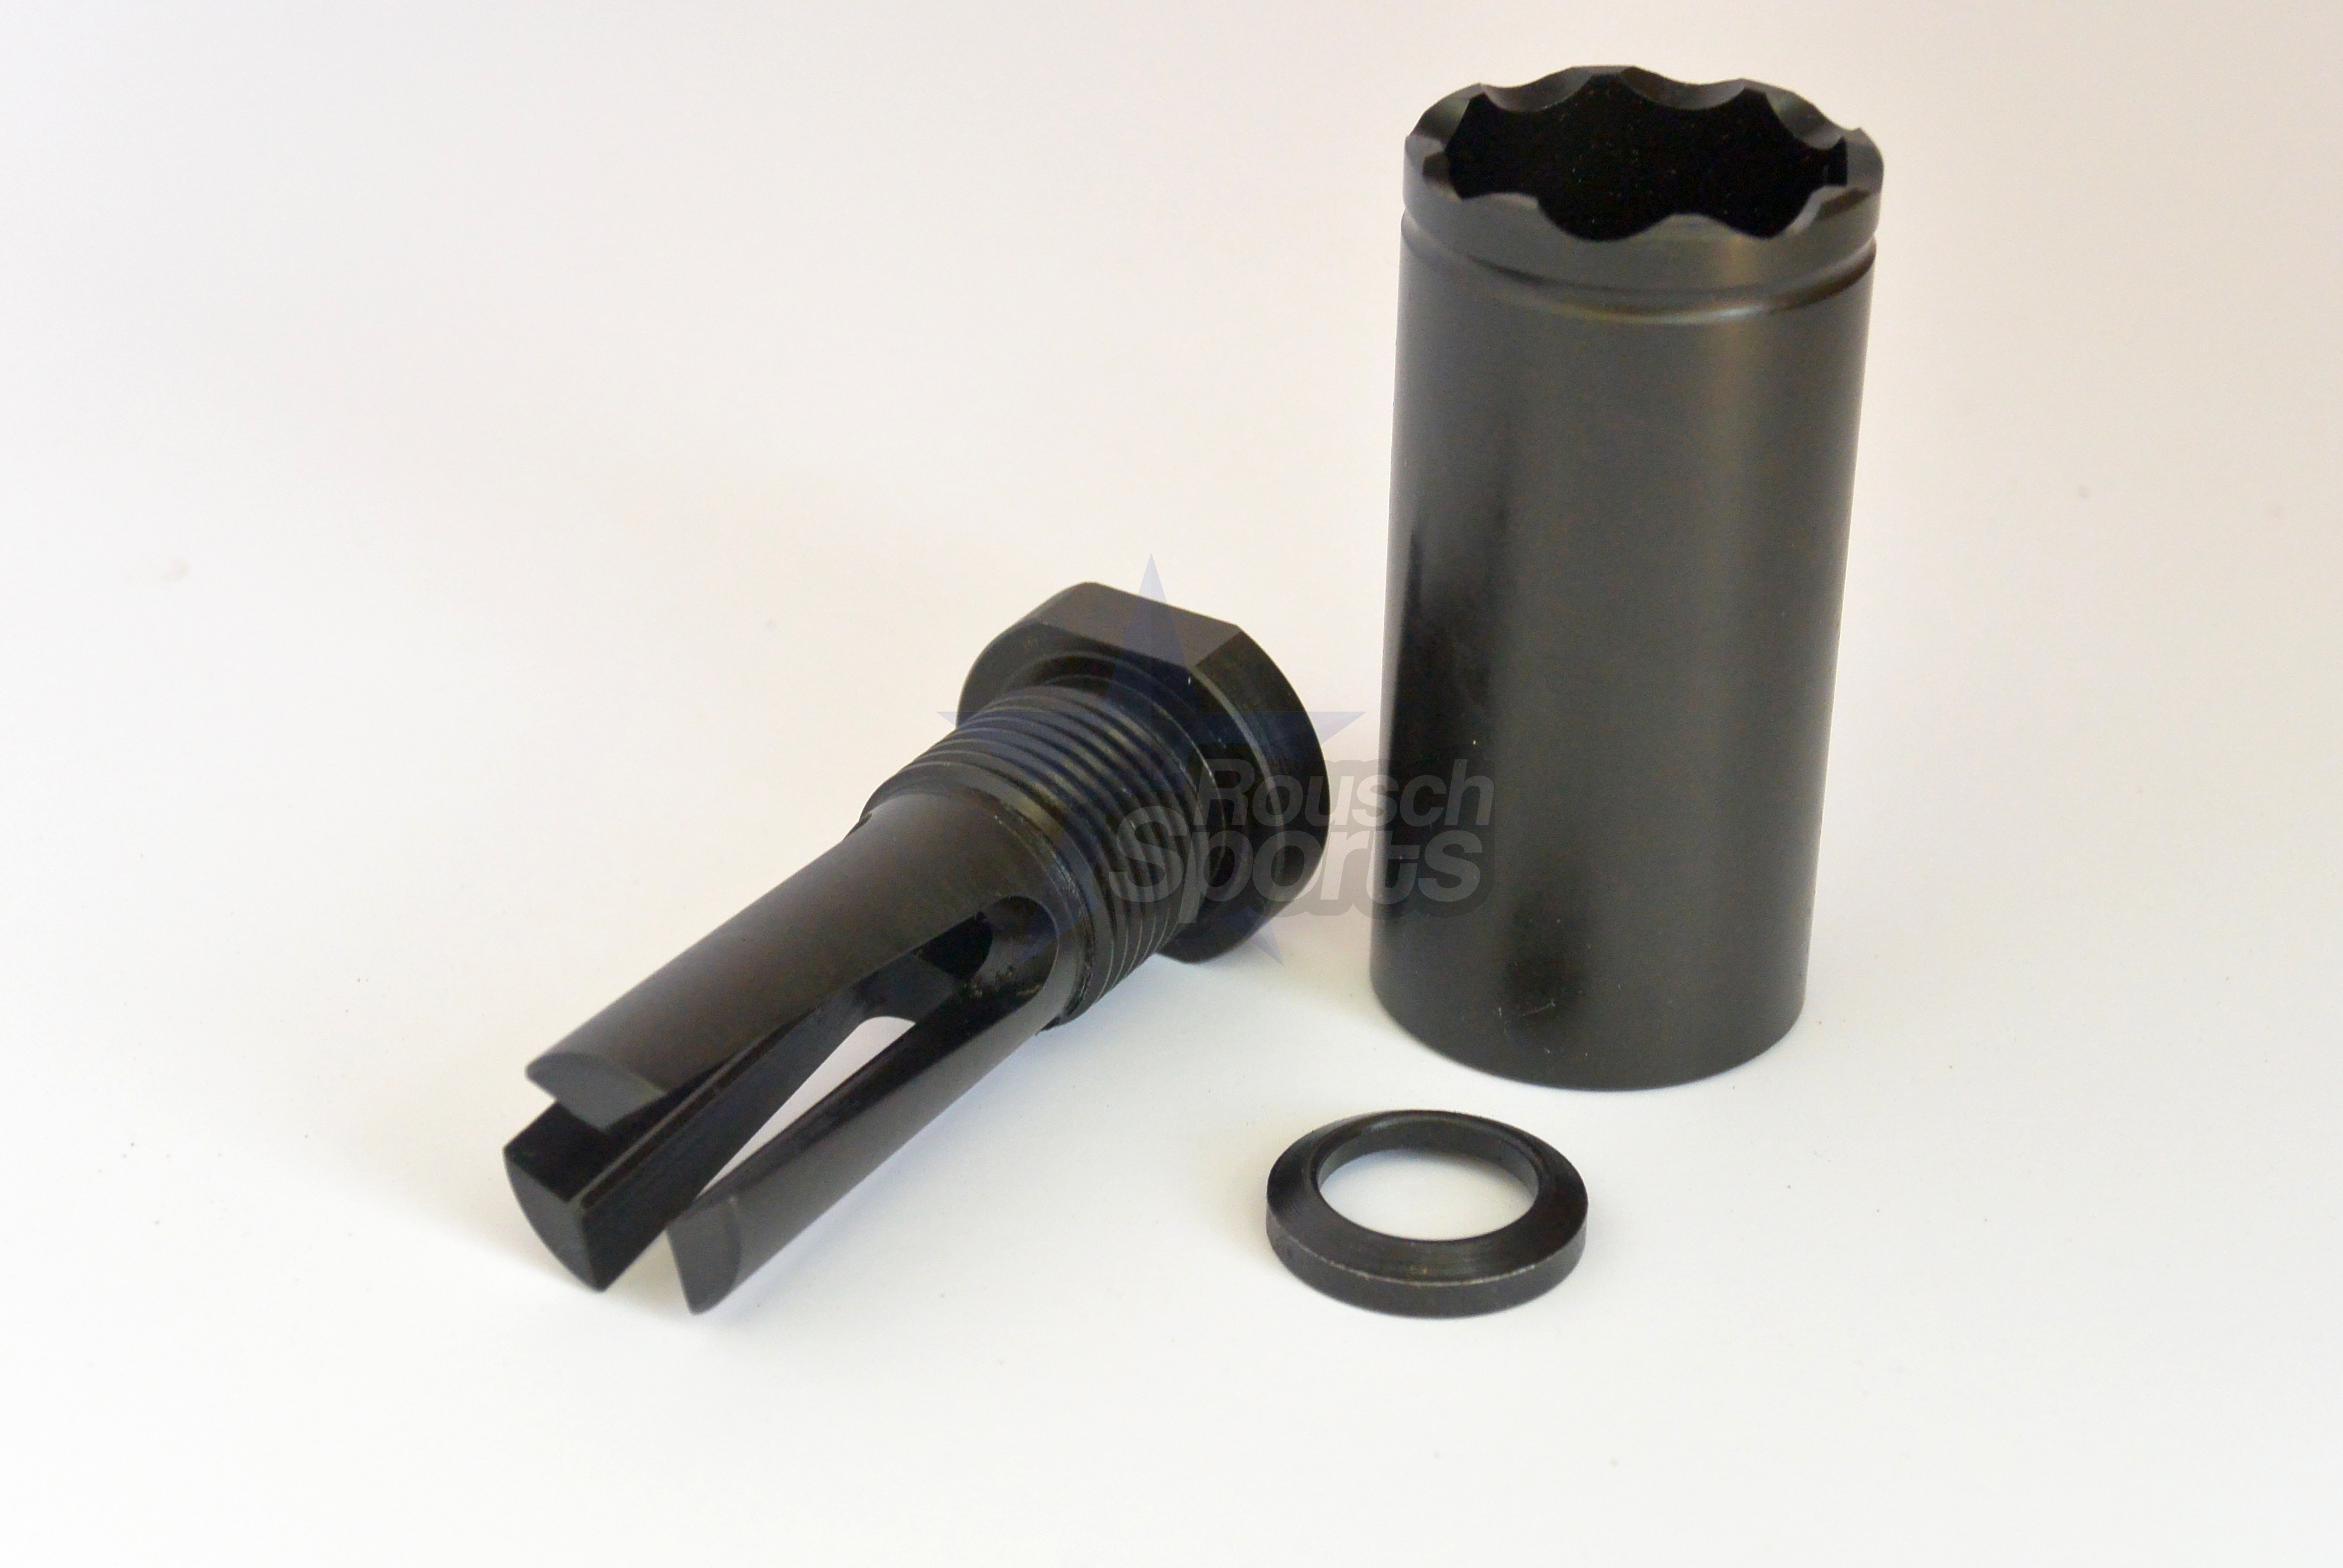 Solvent Trap Adapter Percussion Shroud Thread Protector Adapter